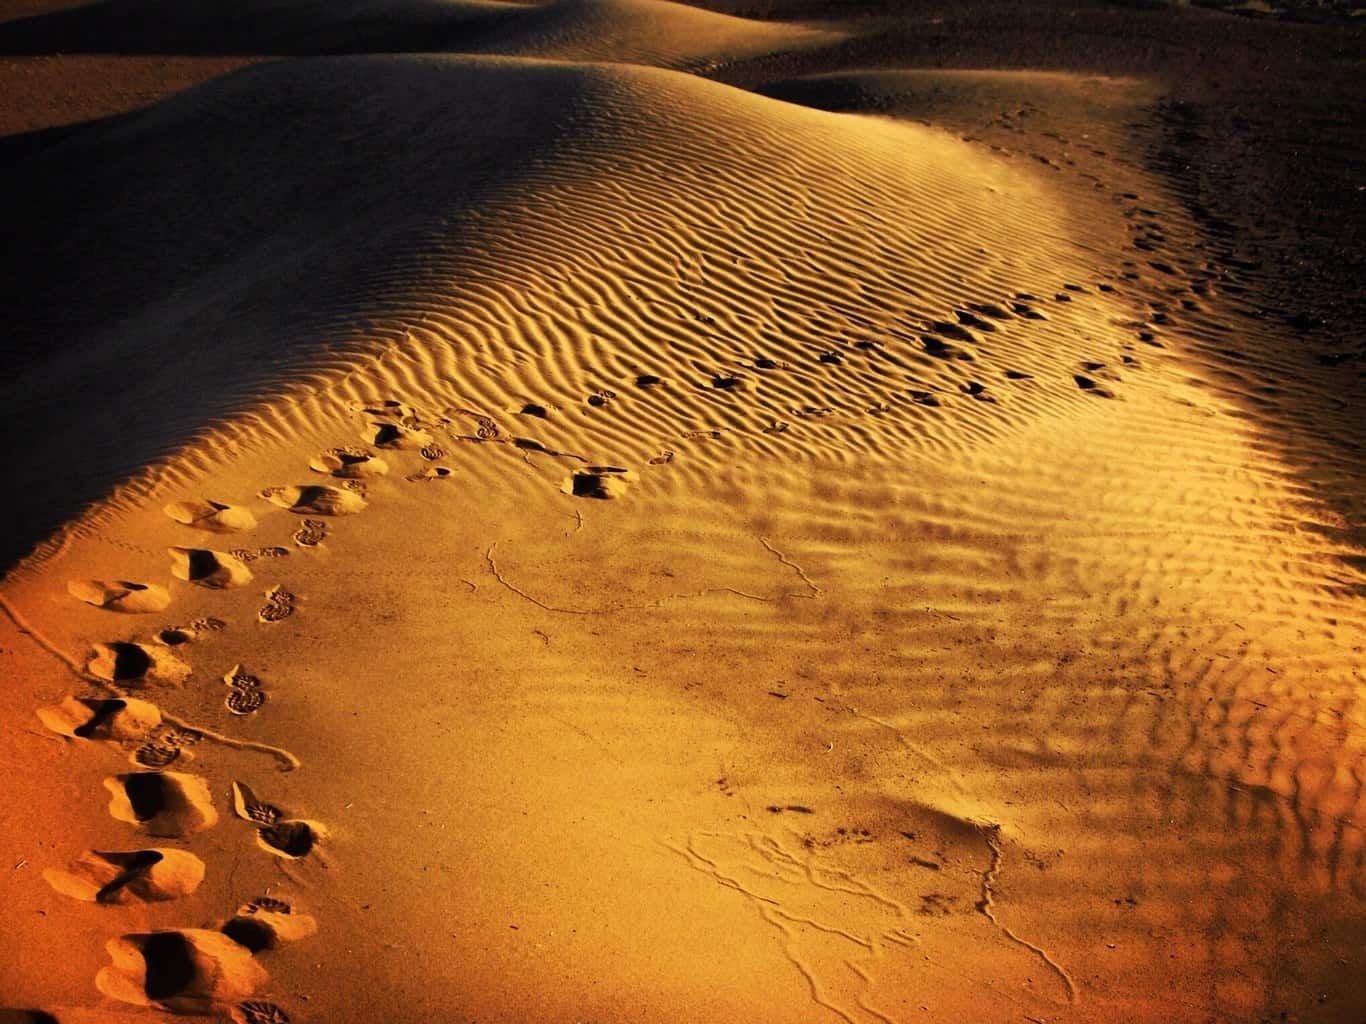 Footprints in the Gobi Desert by James Handlon